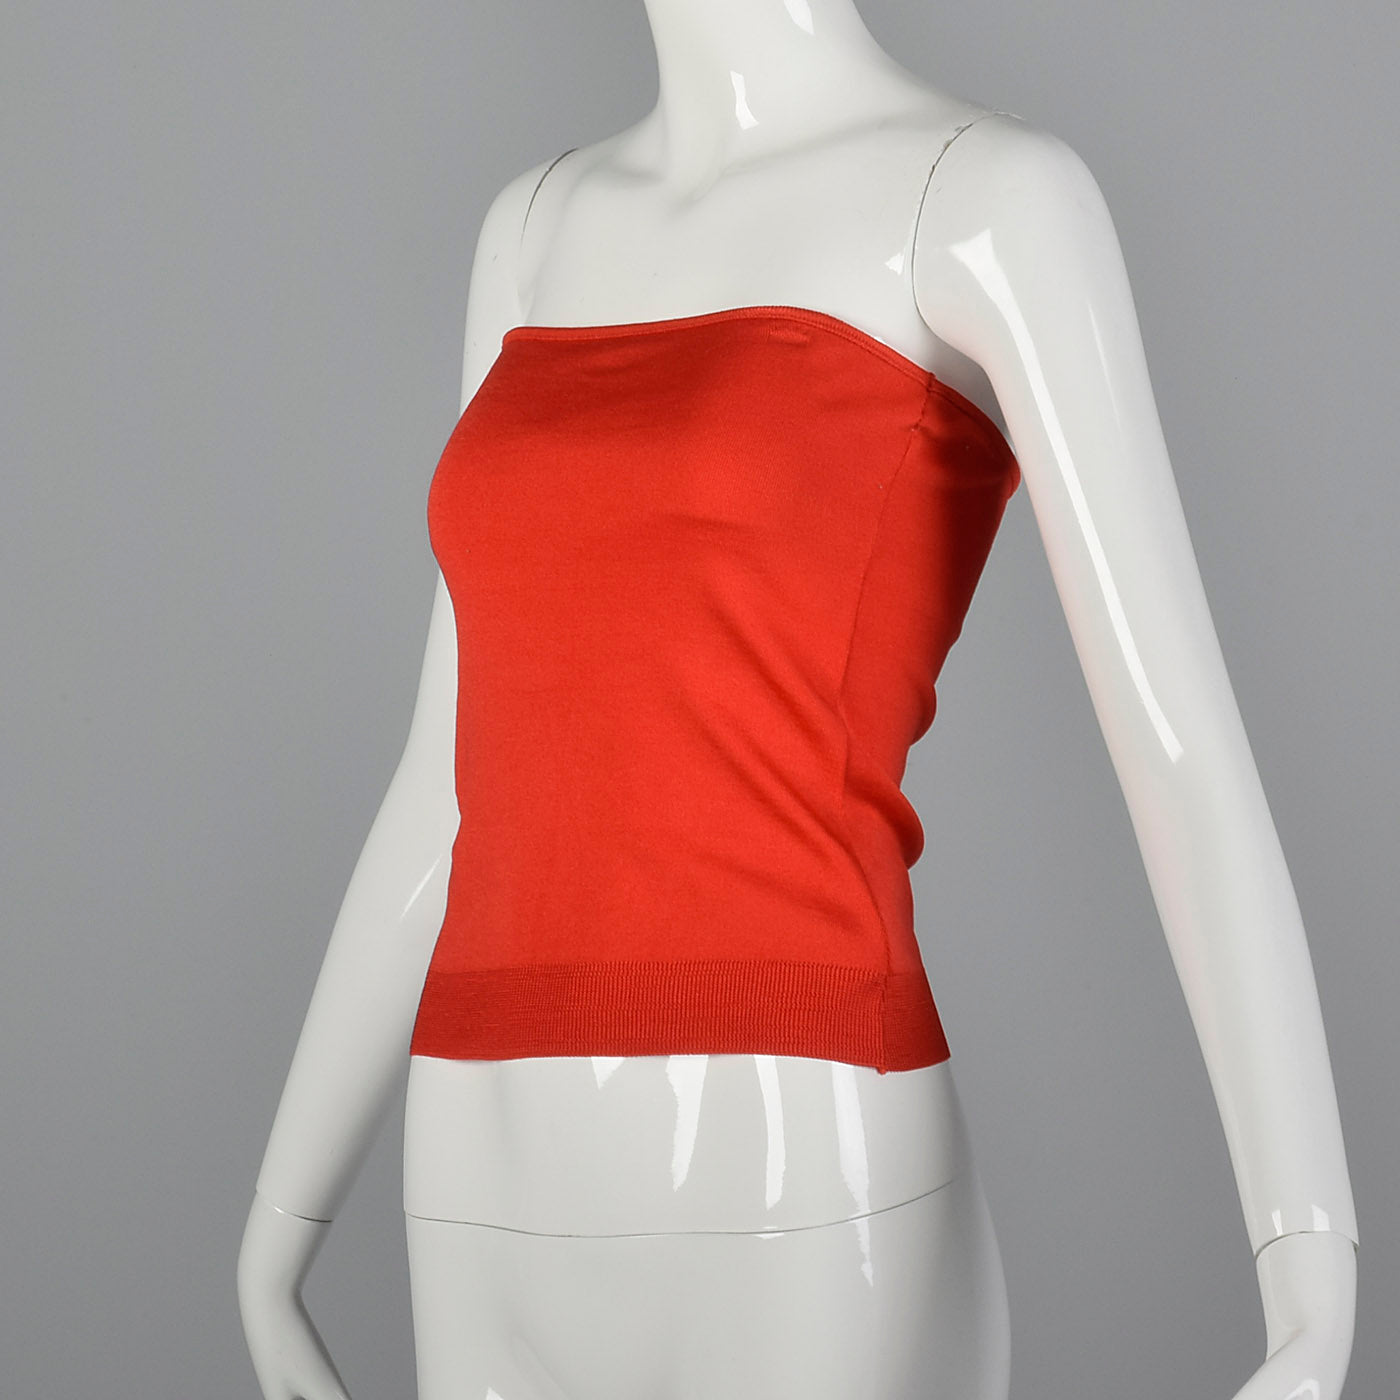 1970s Bill Haire Shiny Red Tube Top